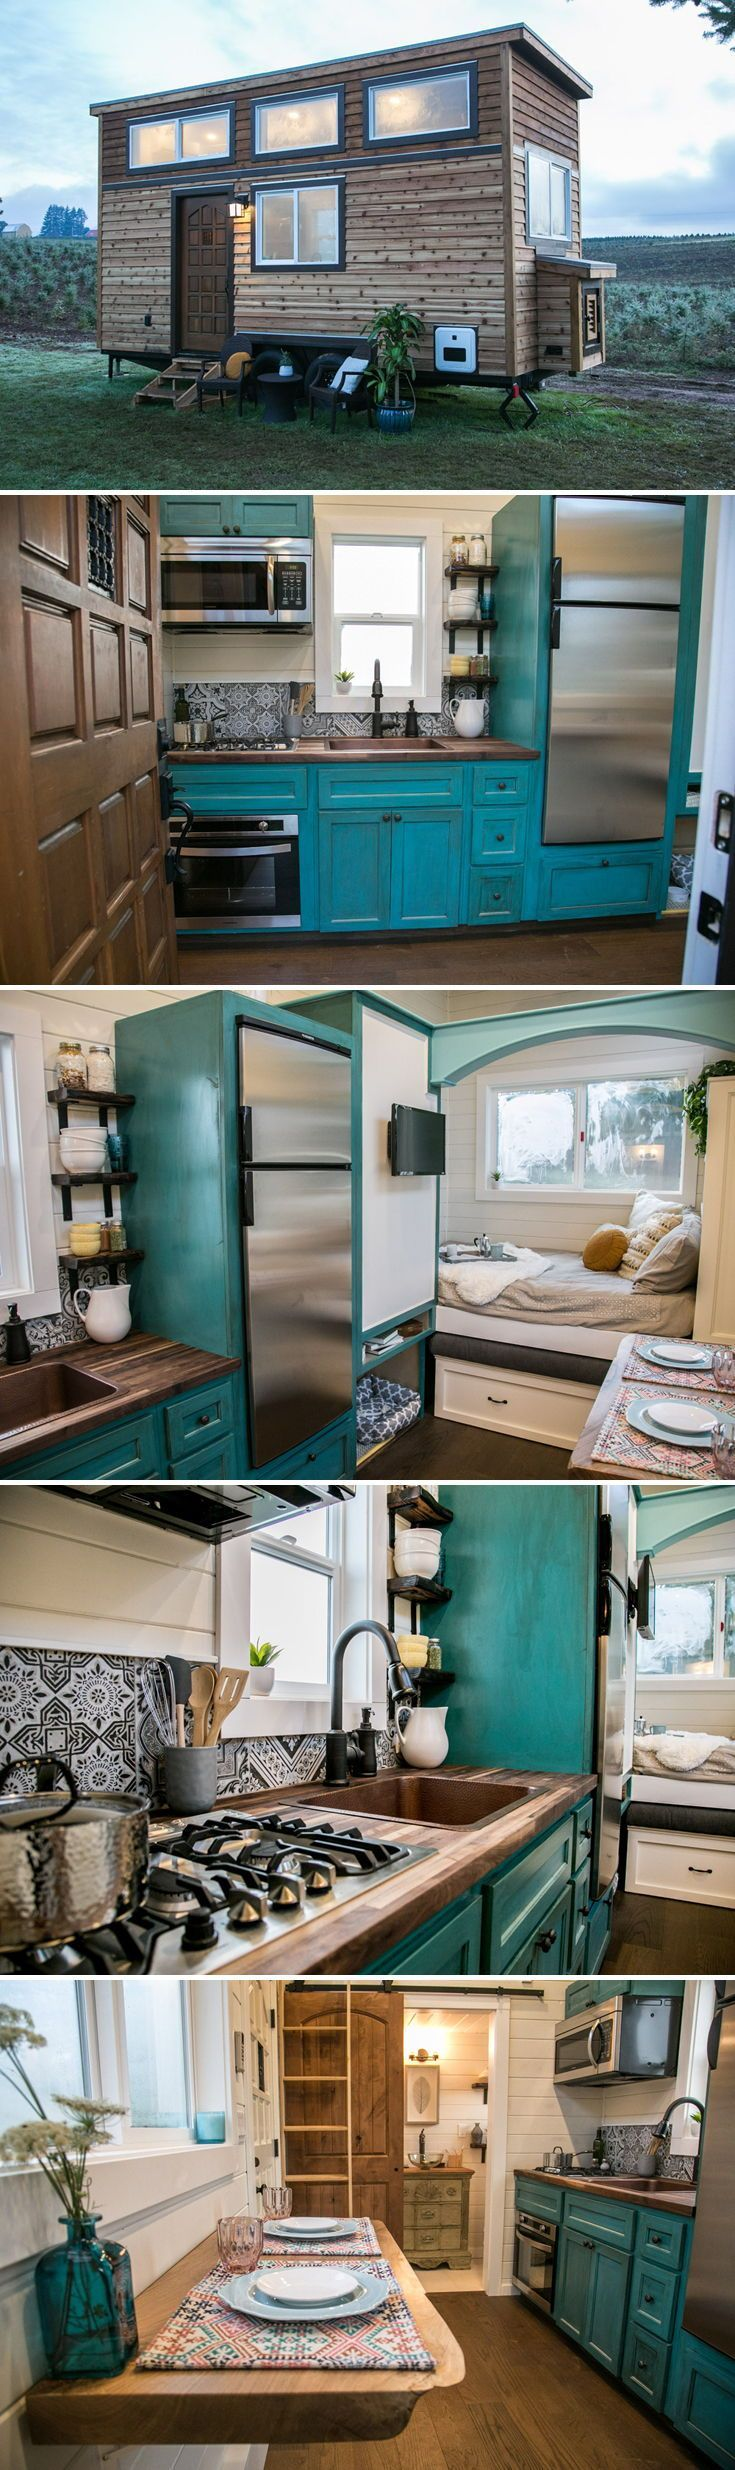 Archway Tiny Home by Tiny Heirloom #tinyhome